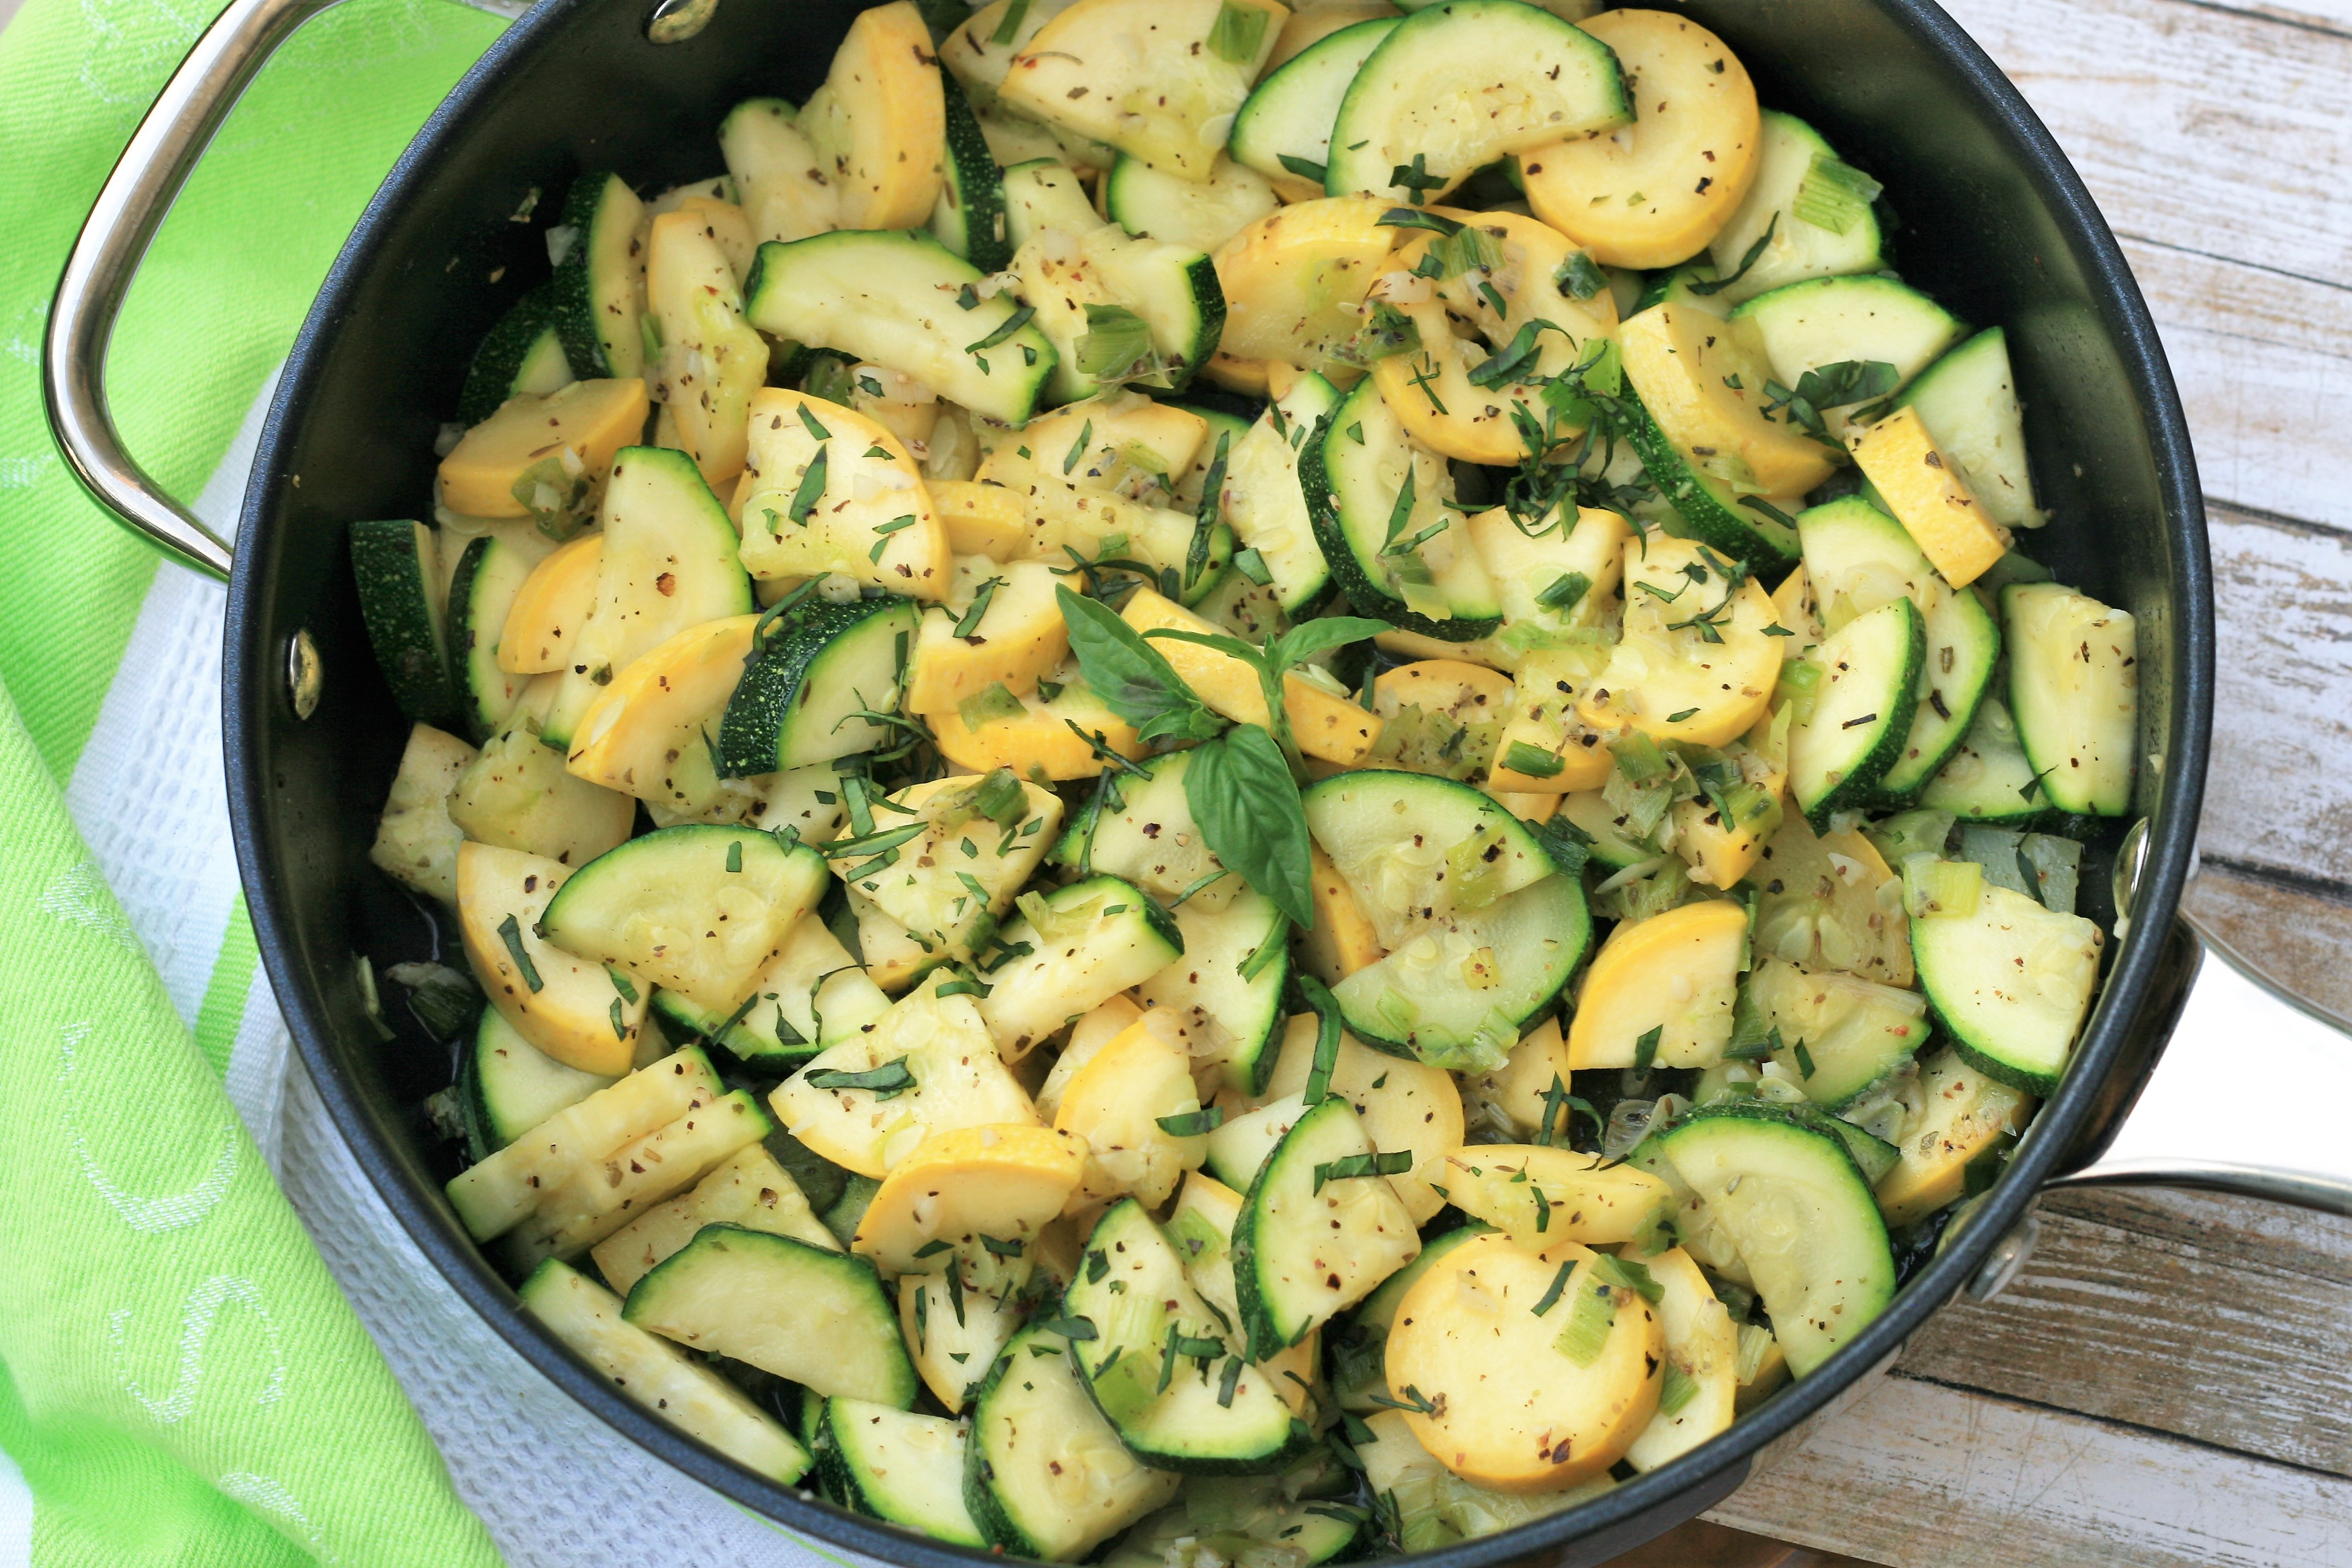 Sauteed Summer Squash Side Dish